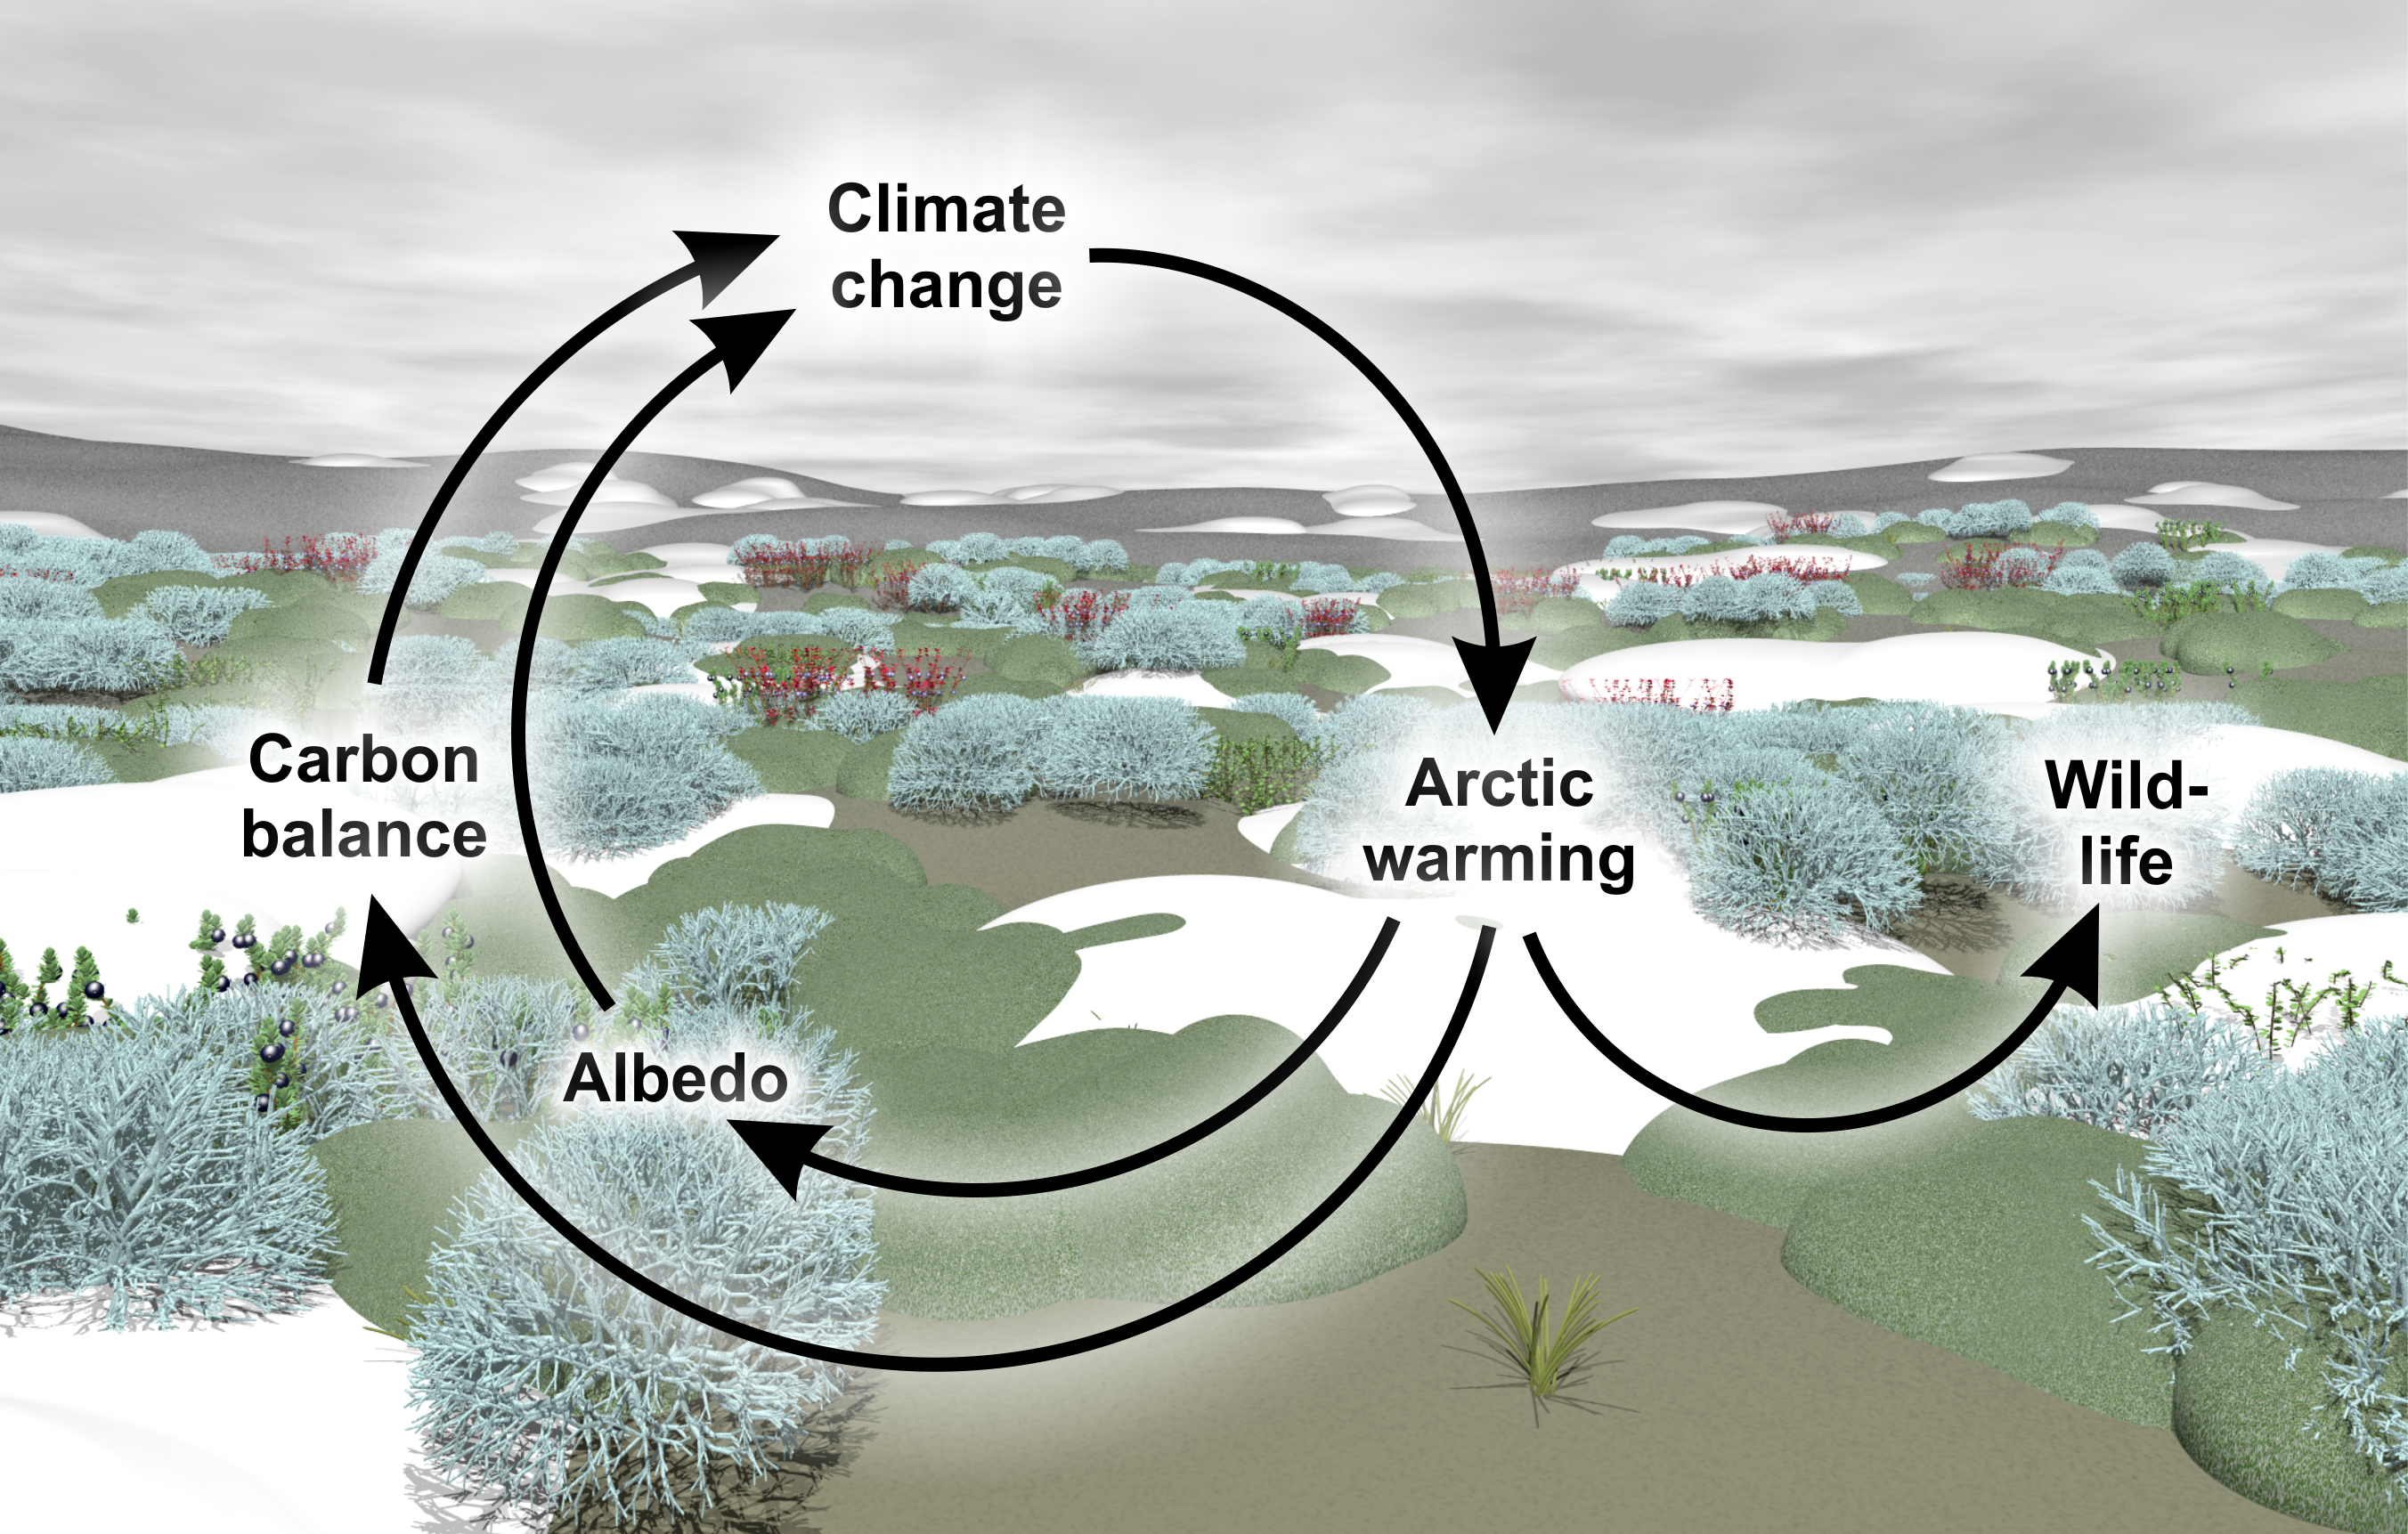 The tundra biome - a hotspot of climate change